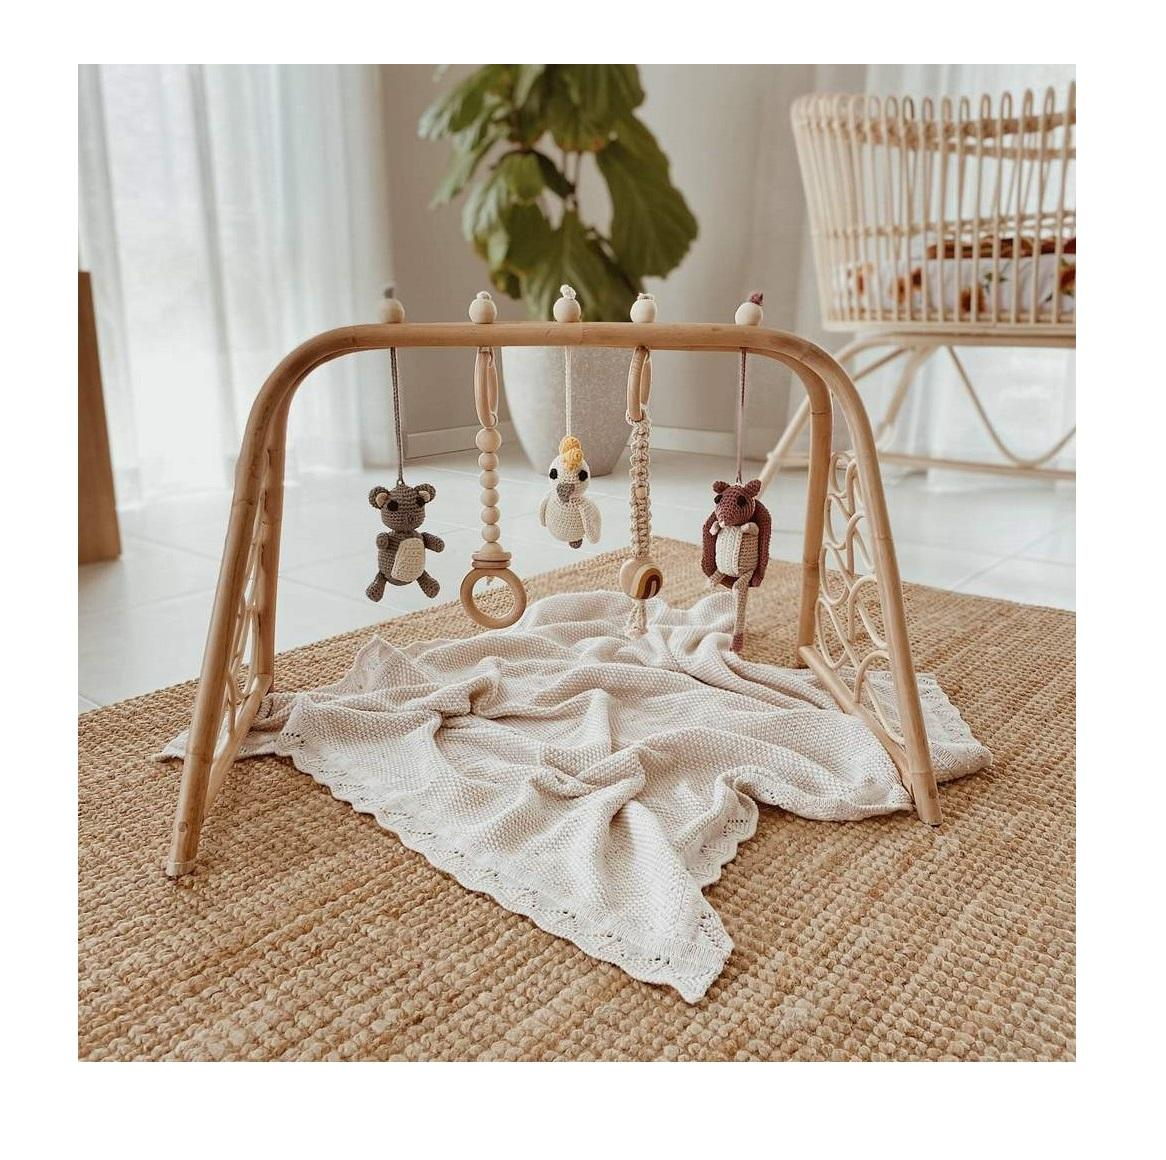 Natural eco friendly wholesale rattan baby gym play